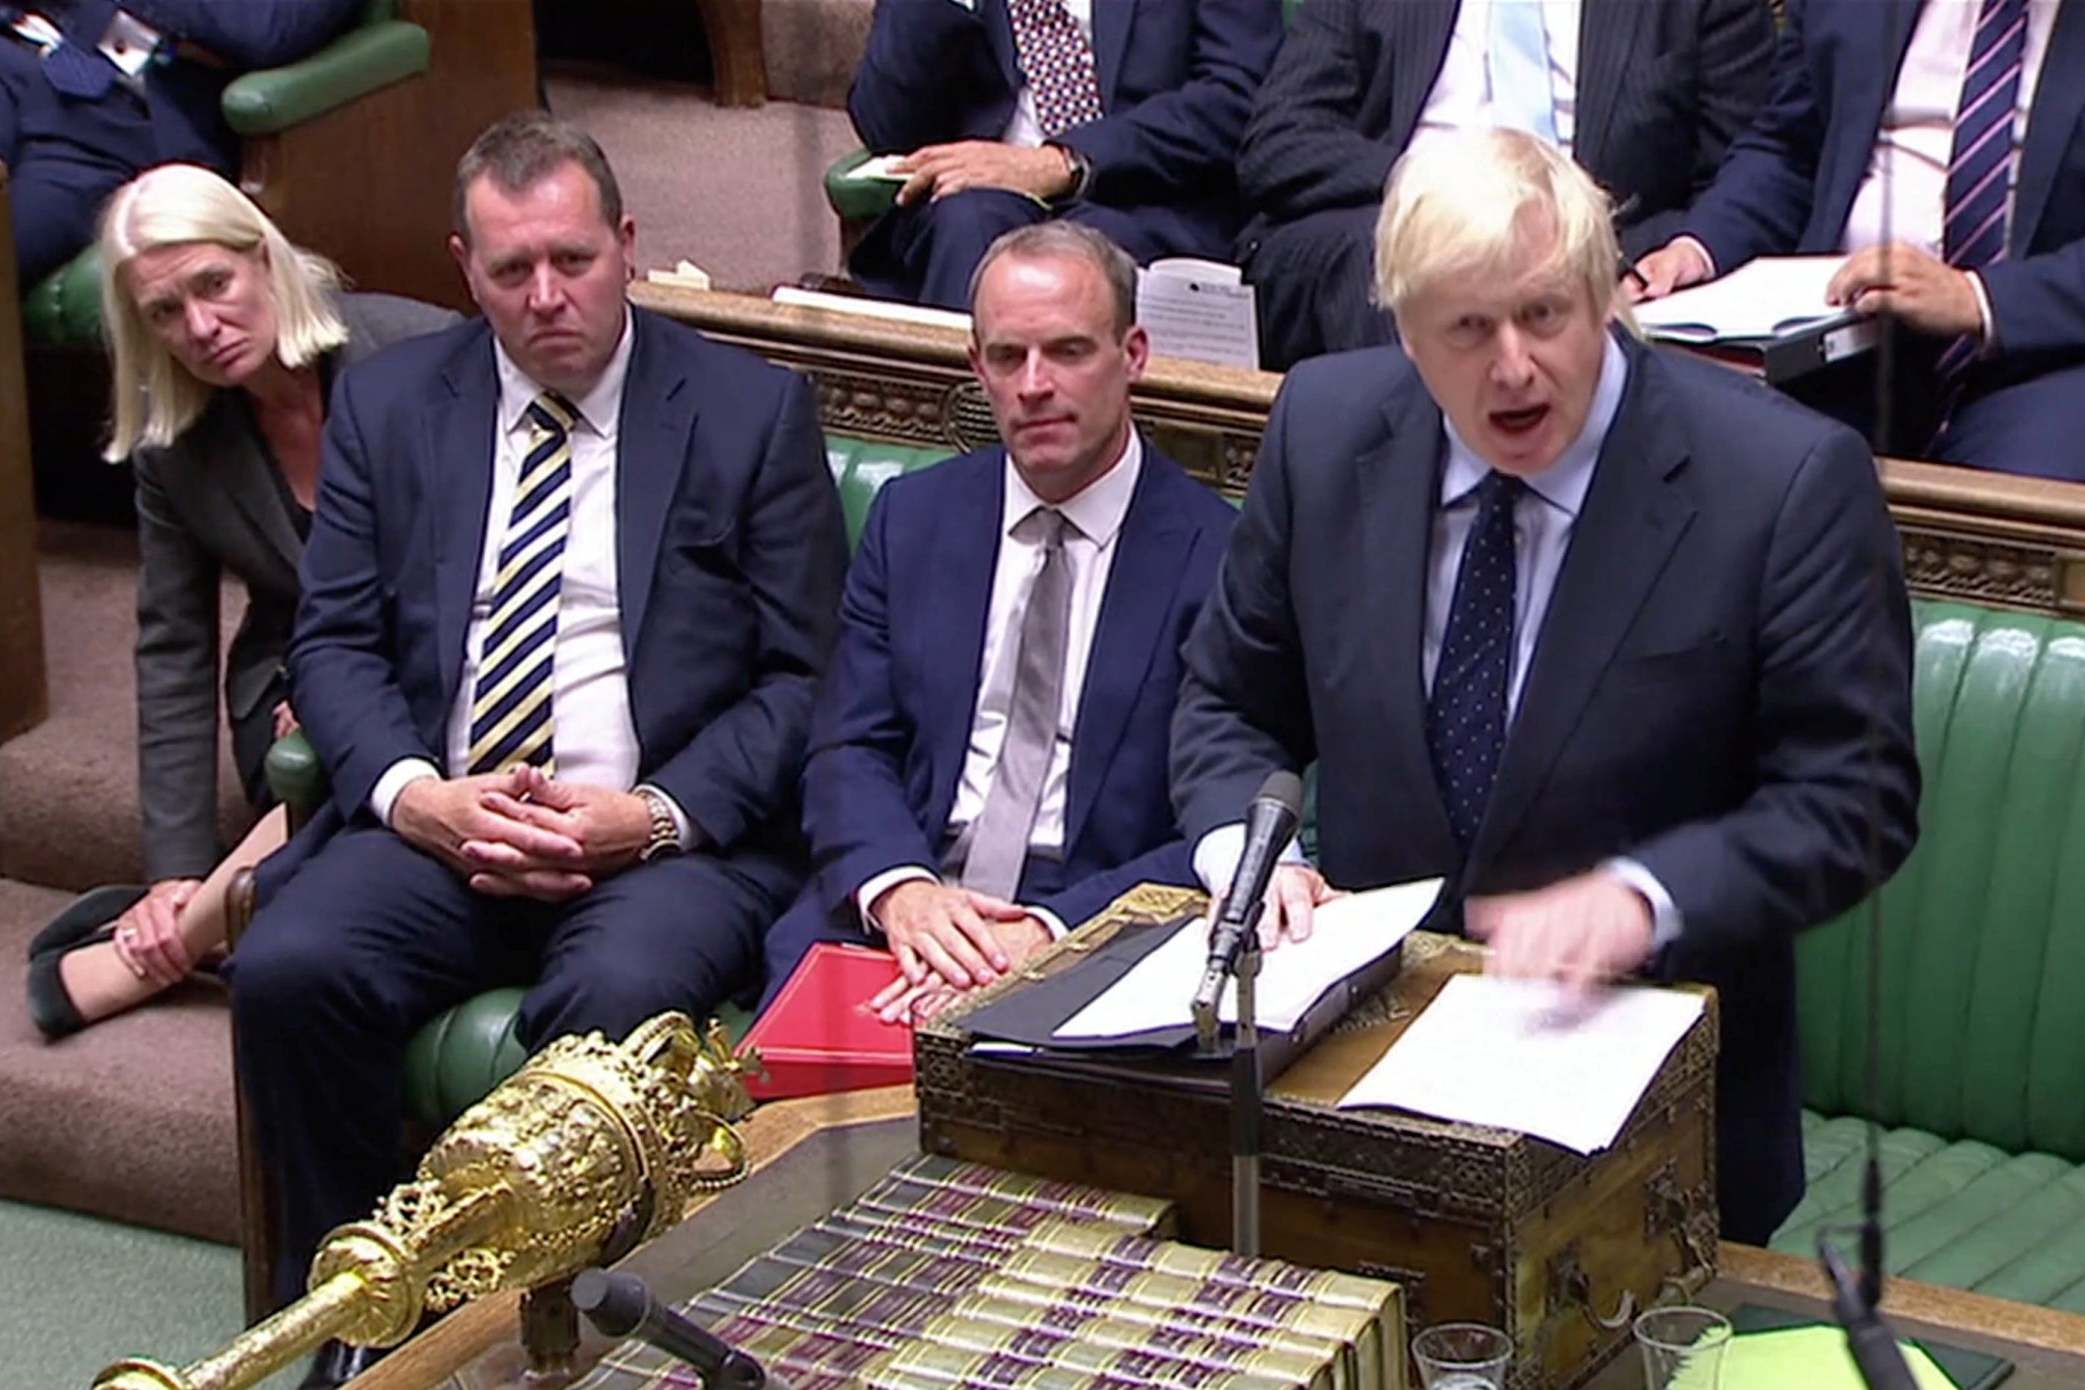 Brexit vote result: Rebel MPs defy threats from Boris Johnson in vote against no-deal